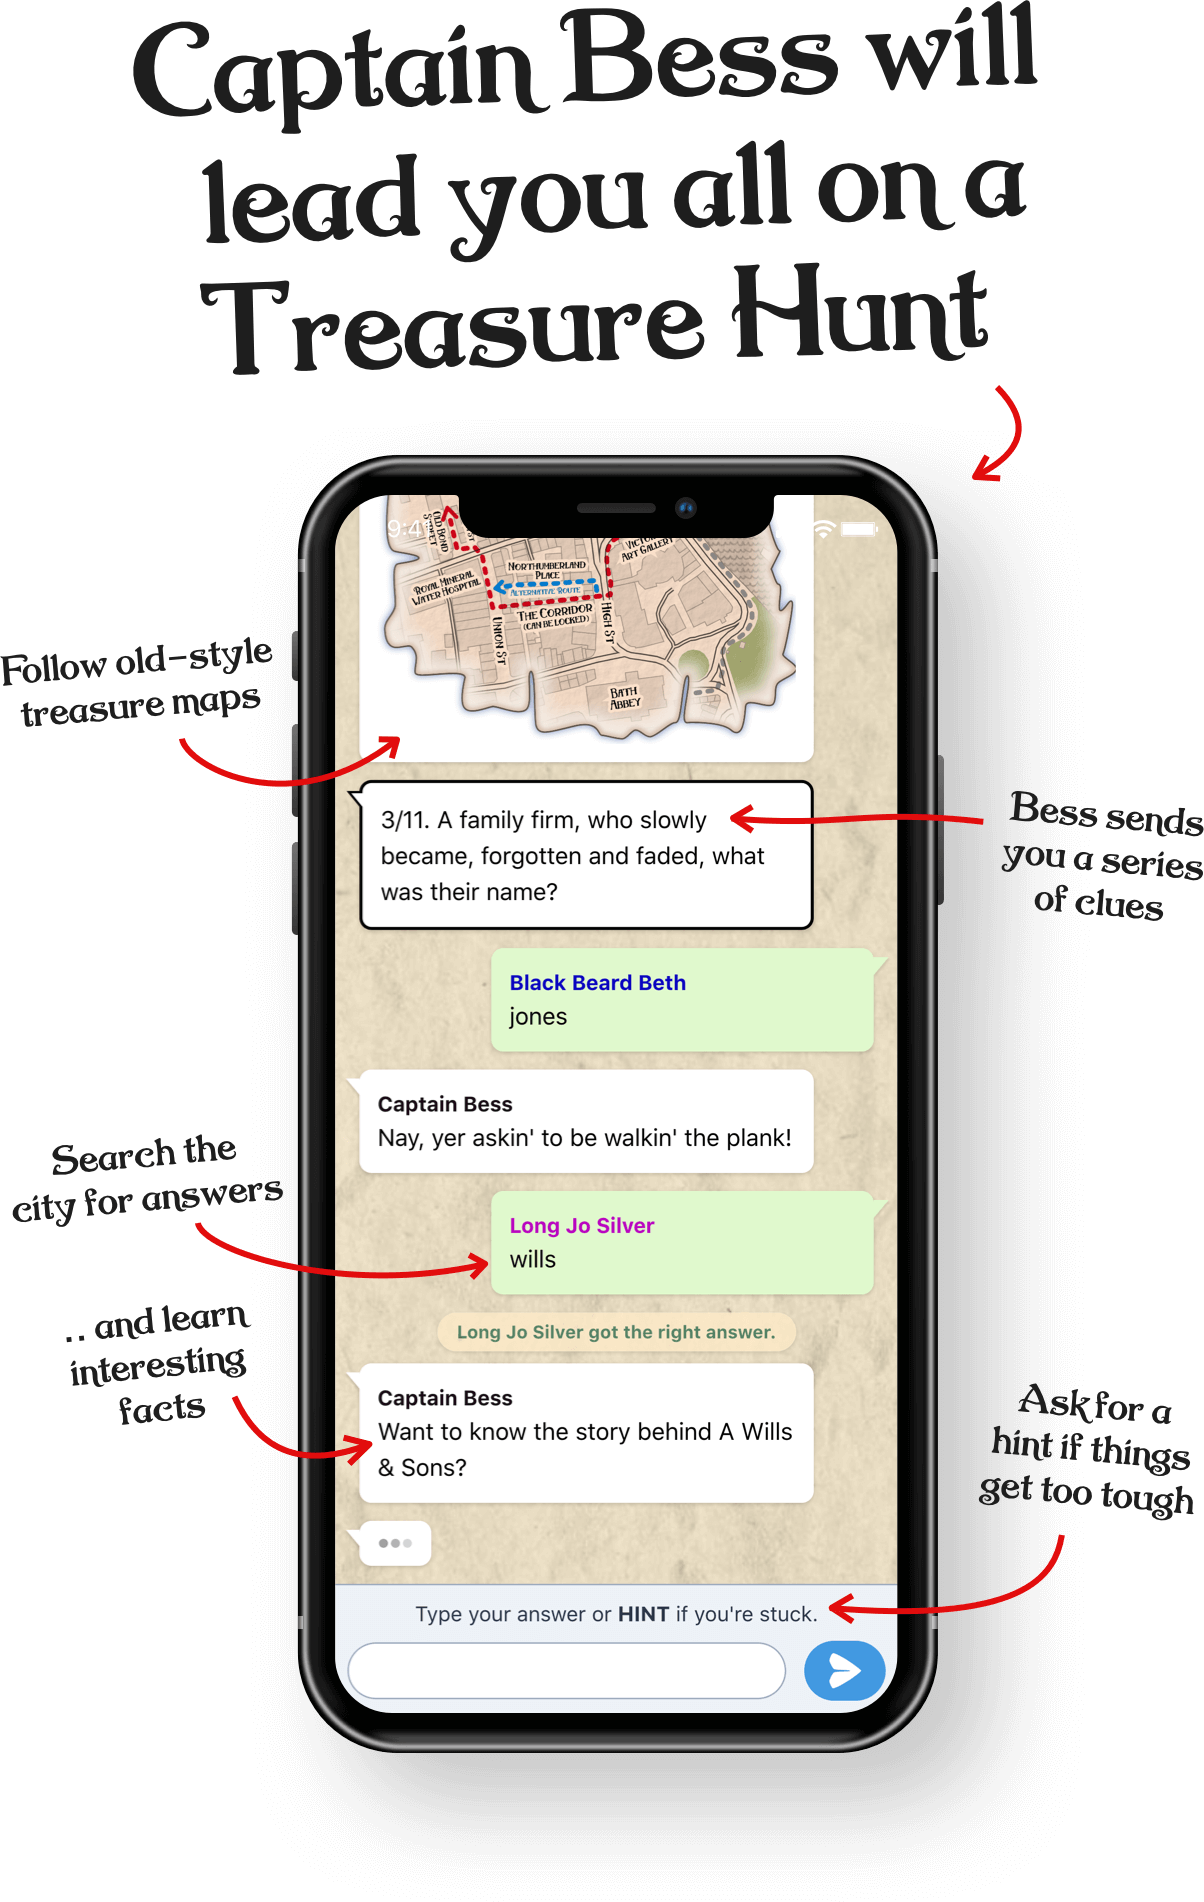 A screenshot of Treasure Hunt Liverpool which looks like a WhatsApp conversation